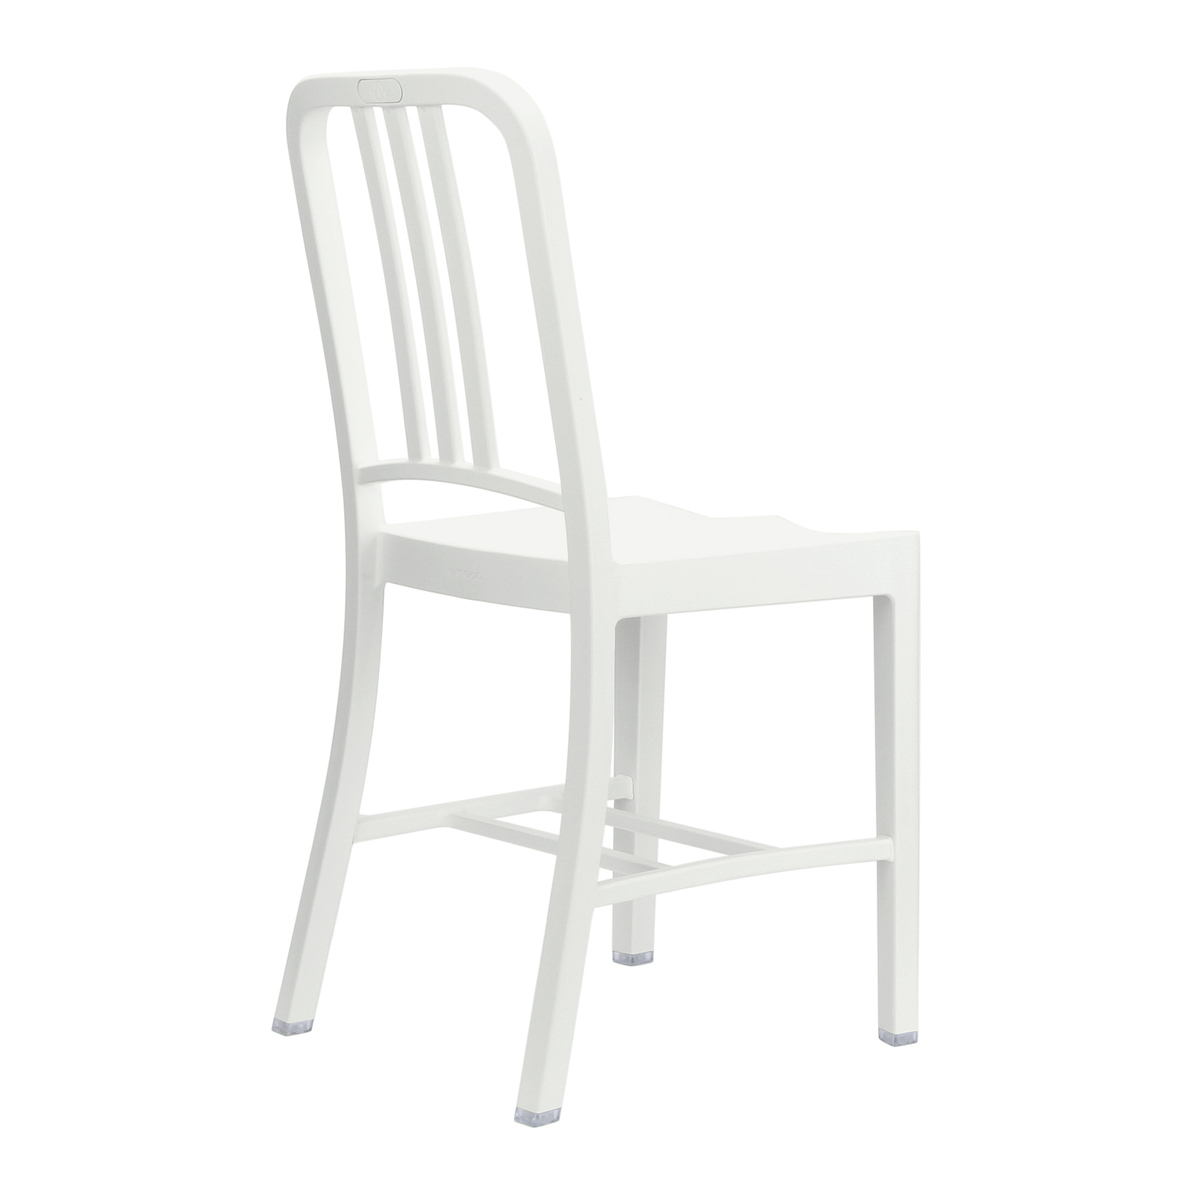 navy and white chair at walmart 111